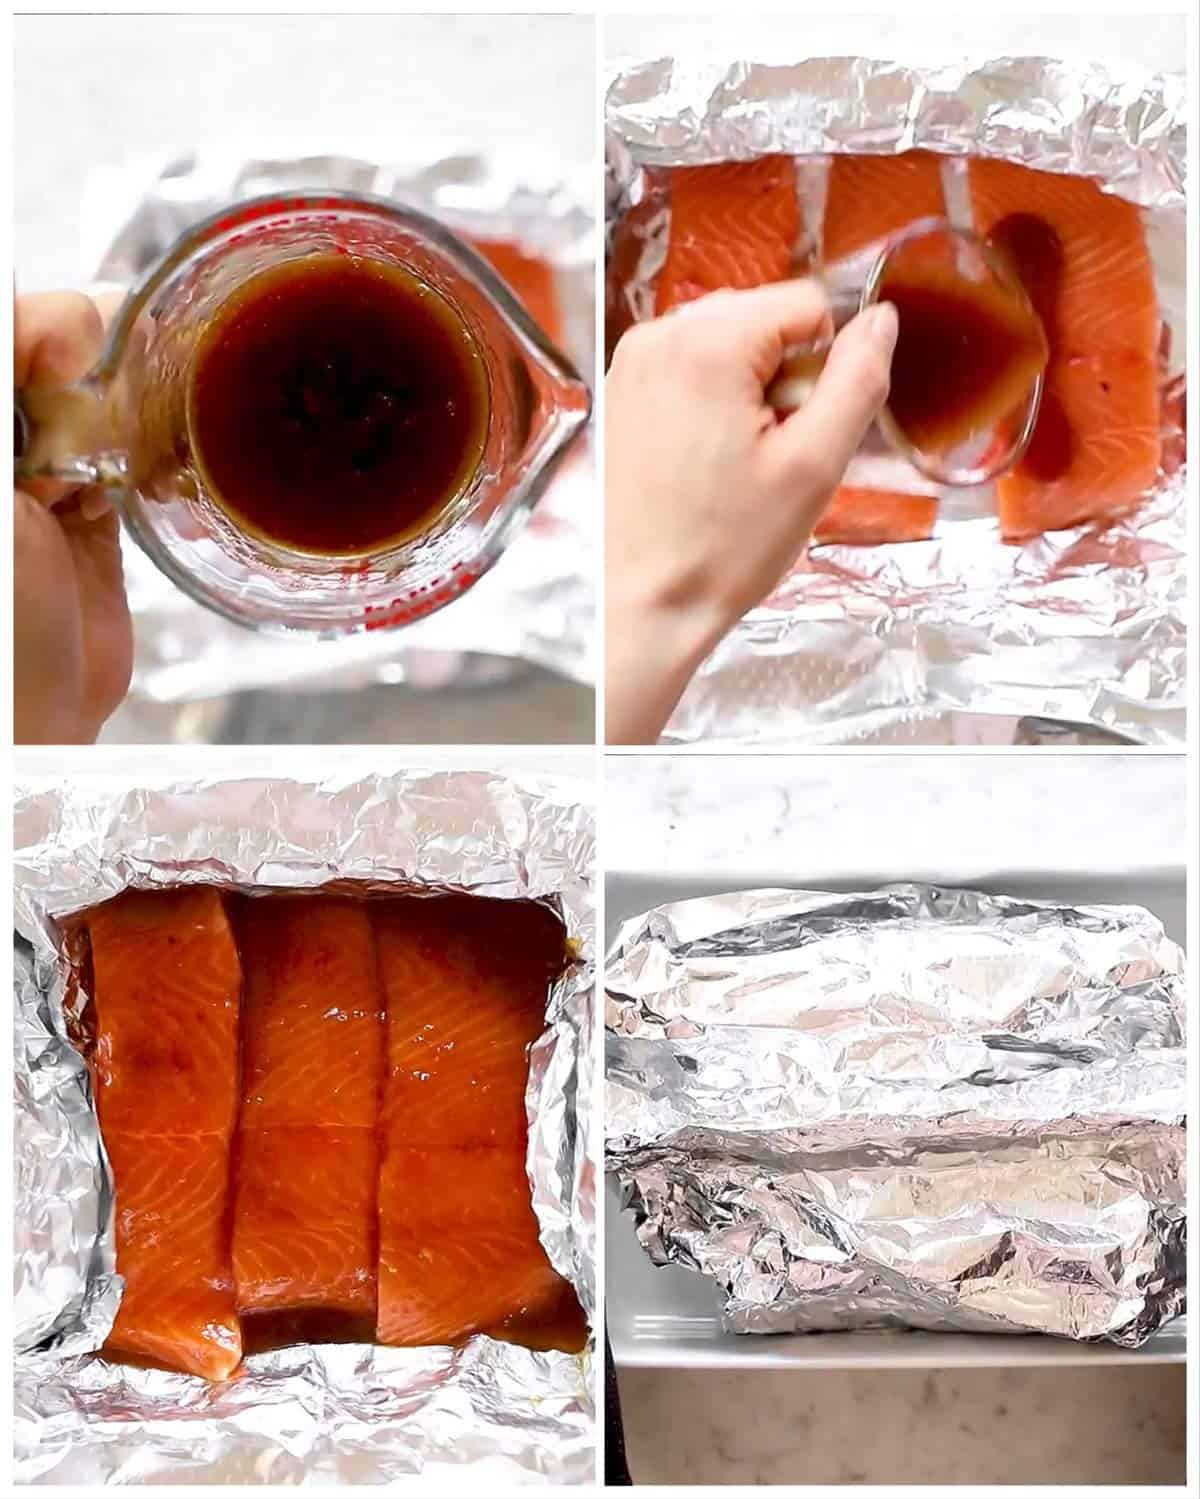 photo collage to show how to prepare honey garlic salmon baked in foil